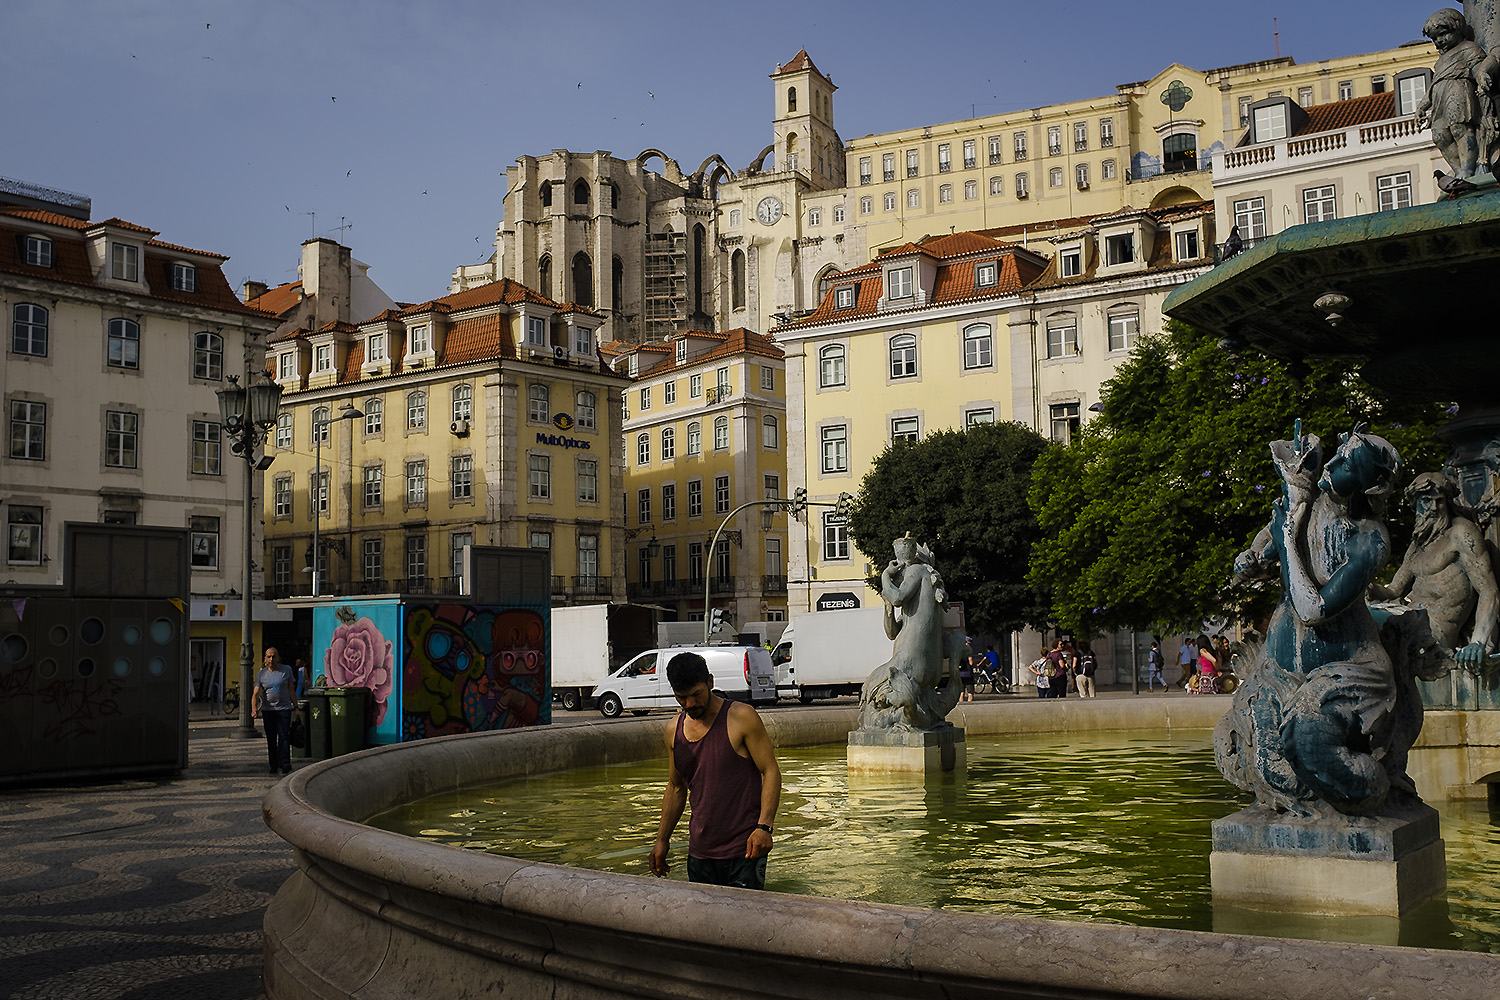 A homeless man refreshes himself inside a water fountain at Rossio Square,  Lisbon, August 2nd, 2018. A heatwave hit Portugal and Spain producing near-record breaking temperatures. Thermometers approached 46 degrees Celsius and Portugal issued red alerts for extreme heat for more than half the country.